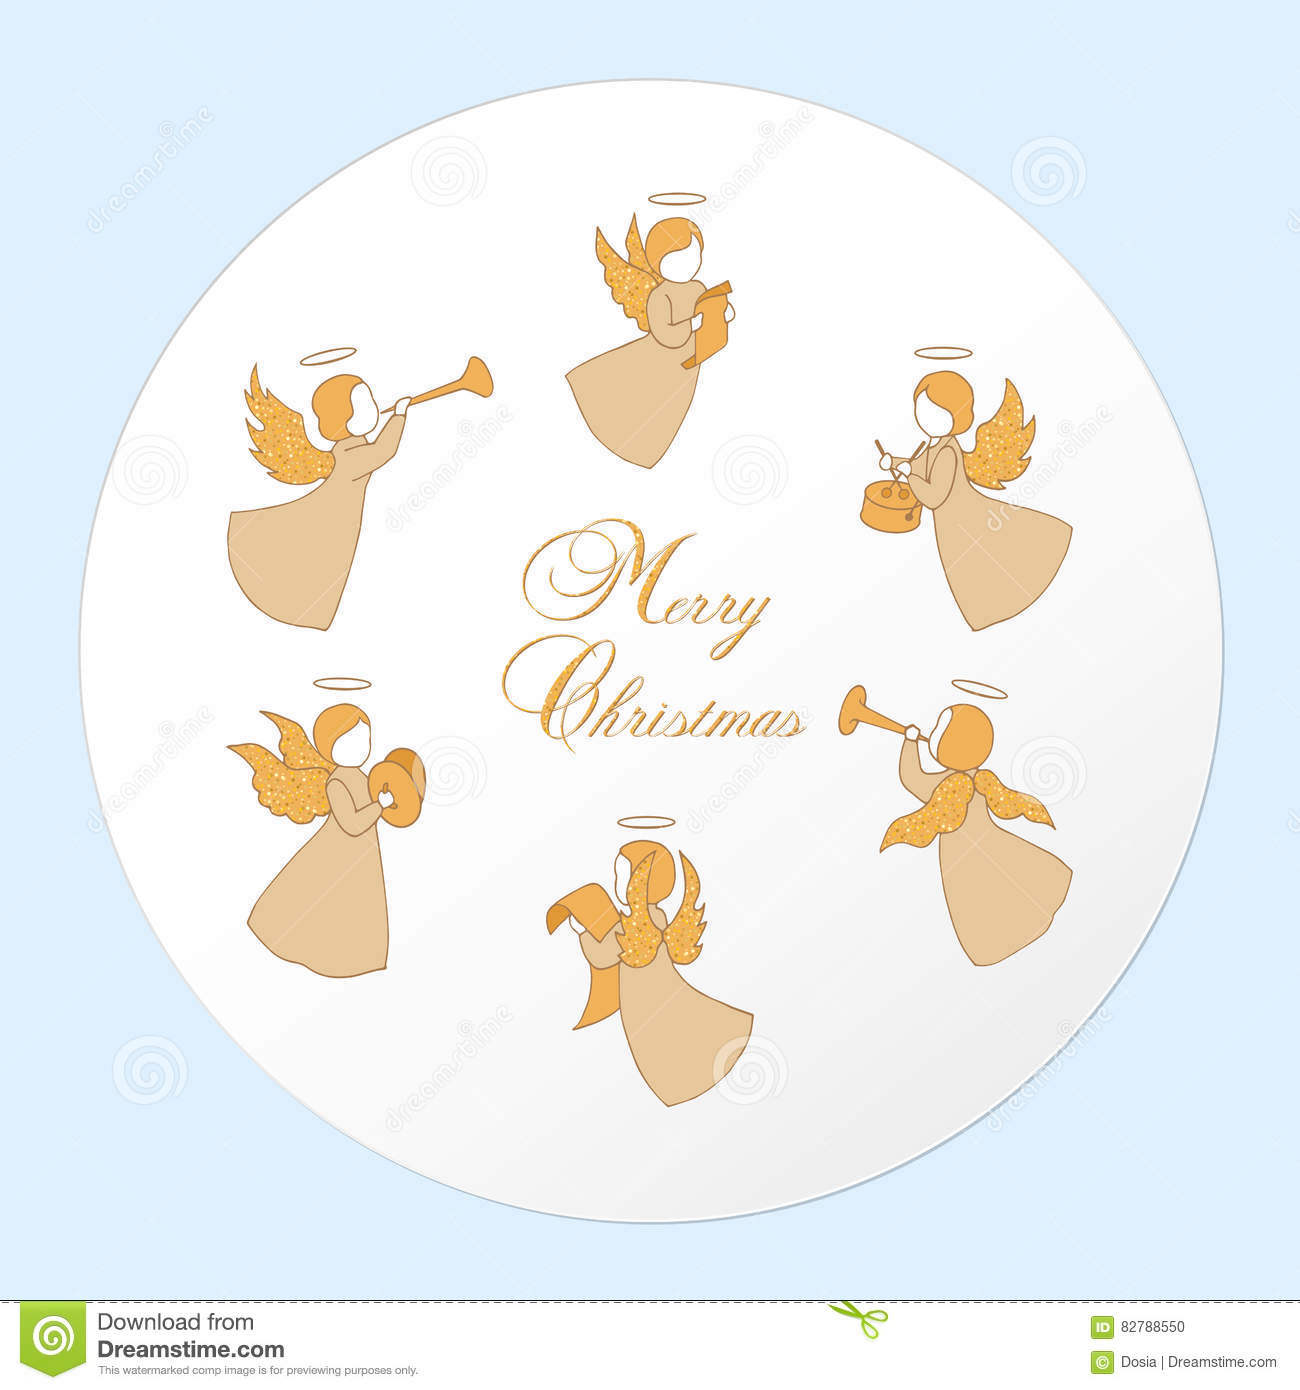 Small Christmas Angels Musicians Stock Vector - Illustration of gift ...